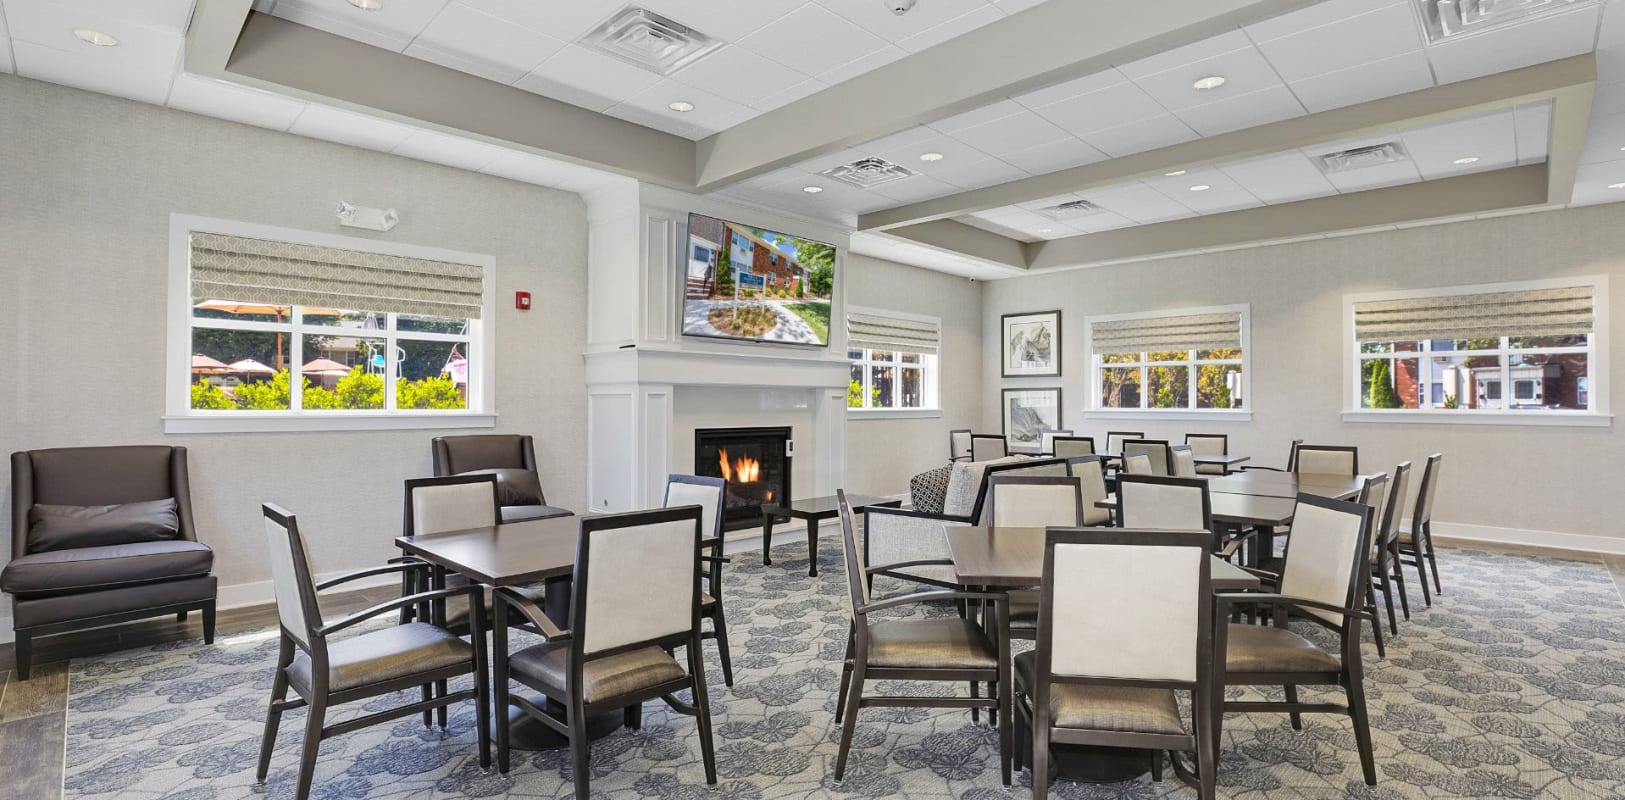 Clubhouse lounge at Nieuw Amsterdam Village in South Amboy, New Jersey